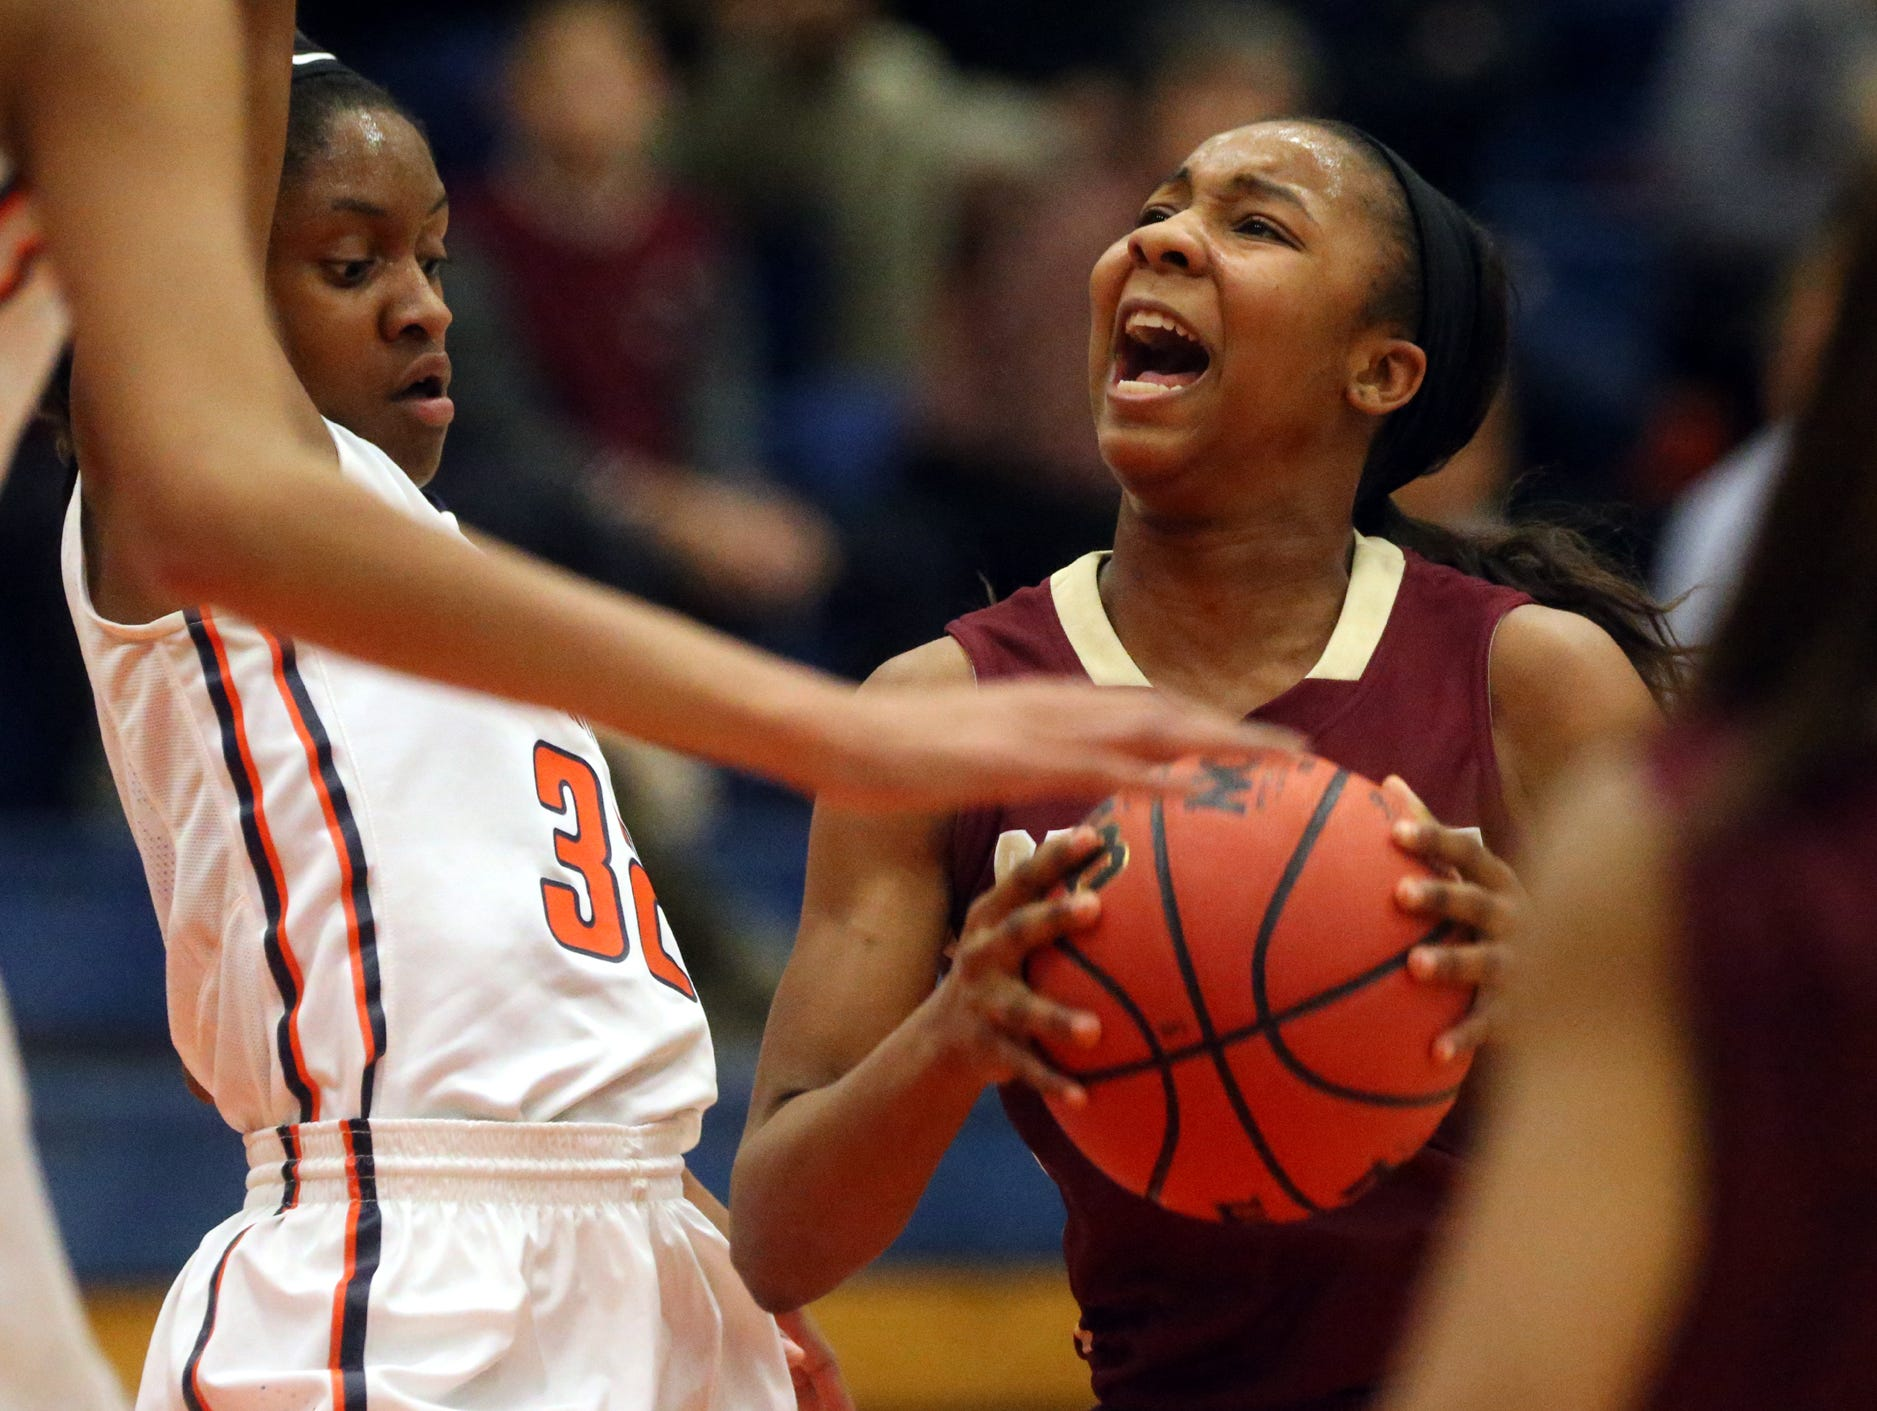 HELEN COMER/DNJ Riverdale's Anastasia Hayes (right) goes up for a shot as Blackman's Crystal Dangerfield (left) defends.